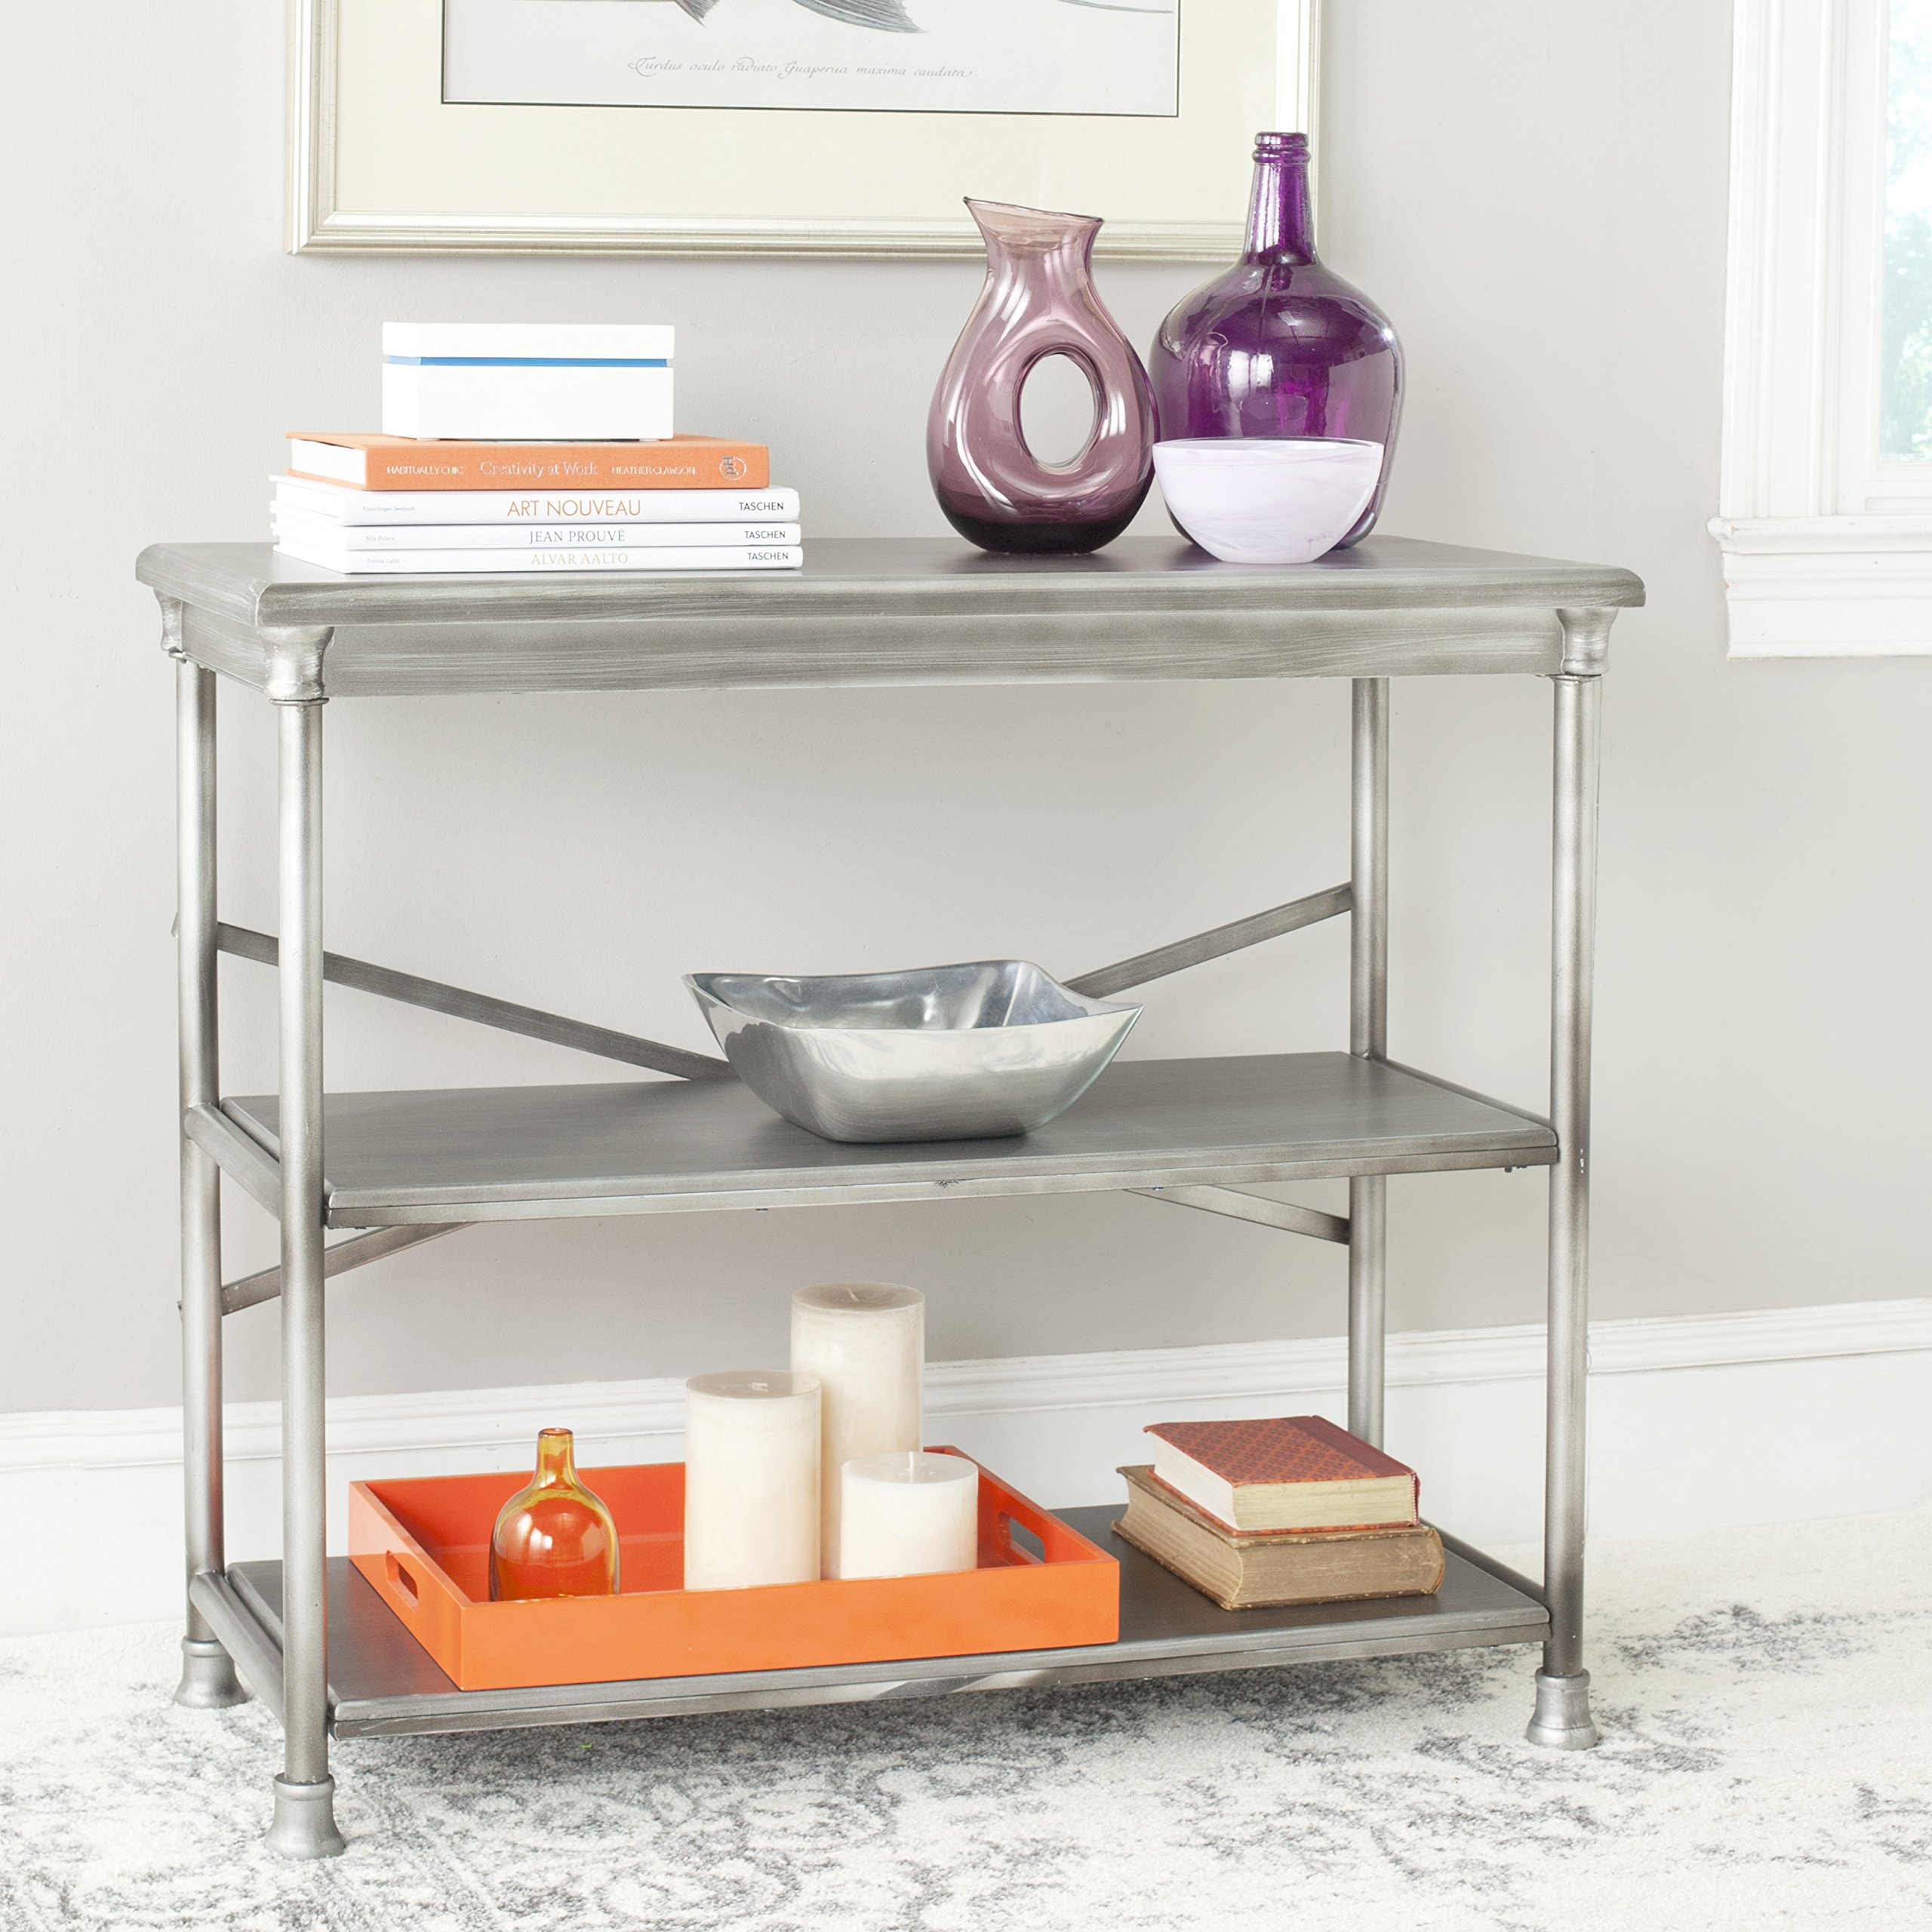 Safavieh American Homes Collection Jacinda Medium Bookcase, Dark Silver